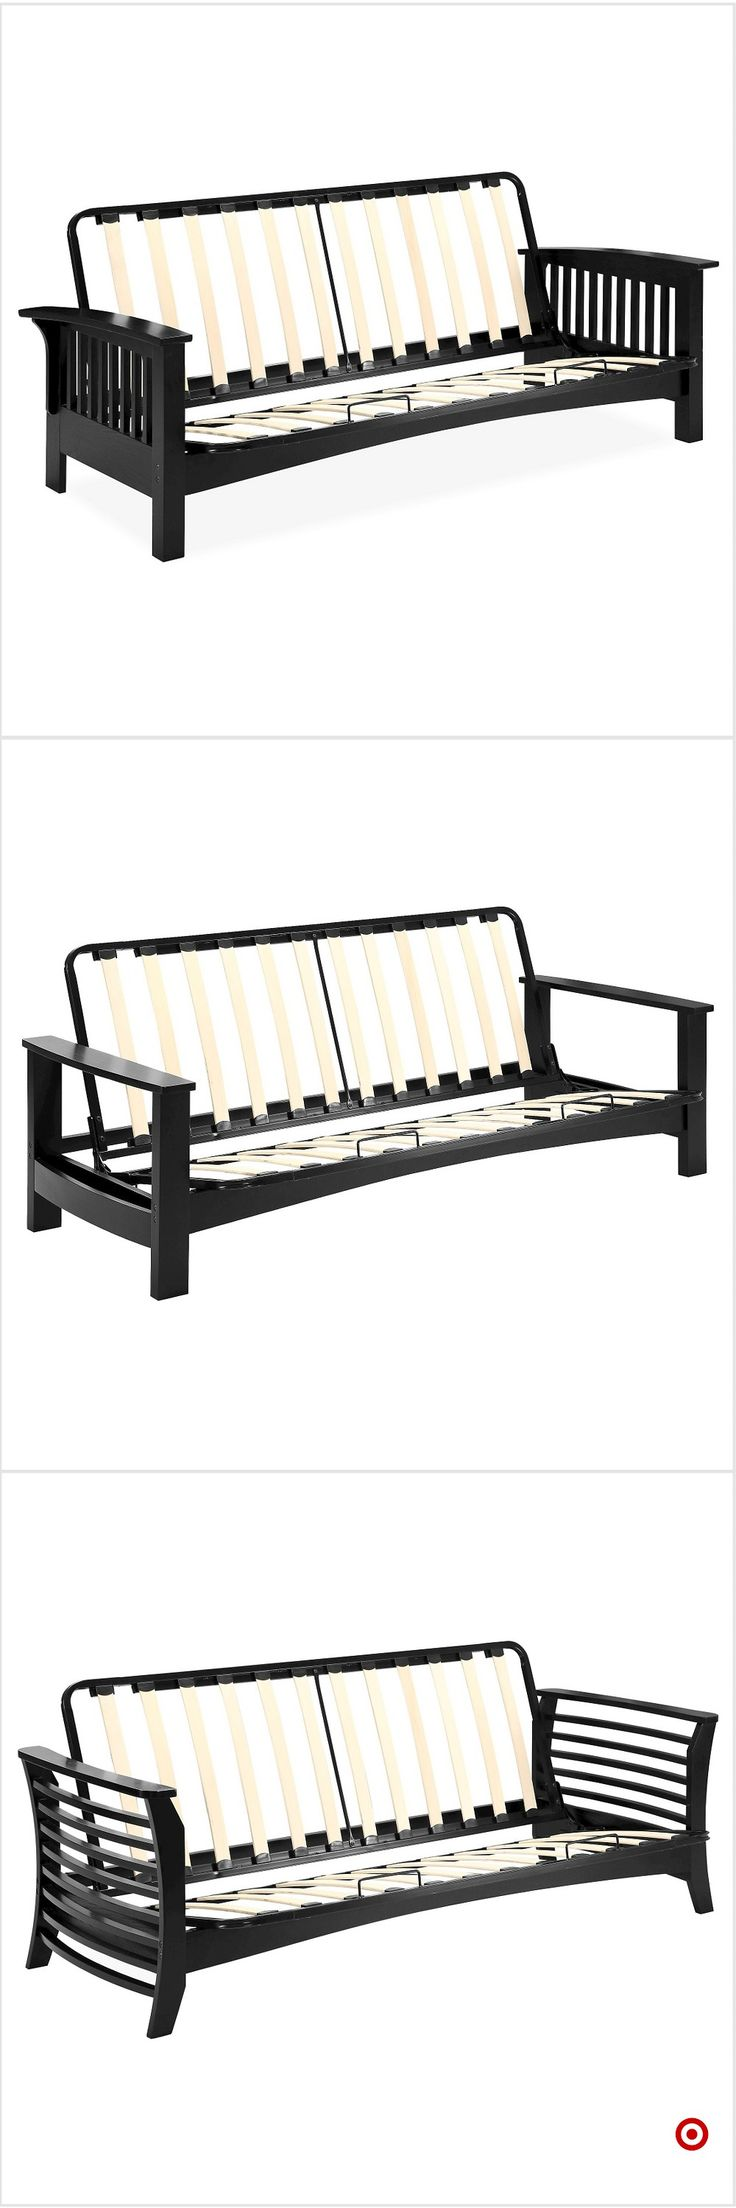 Shop Target for futon frames you will love at great low prices. Free shipping on orders of $35+ or free same-day pick-up in store.